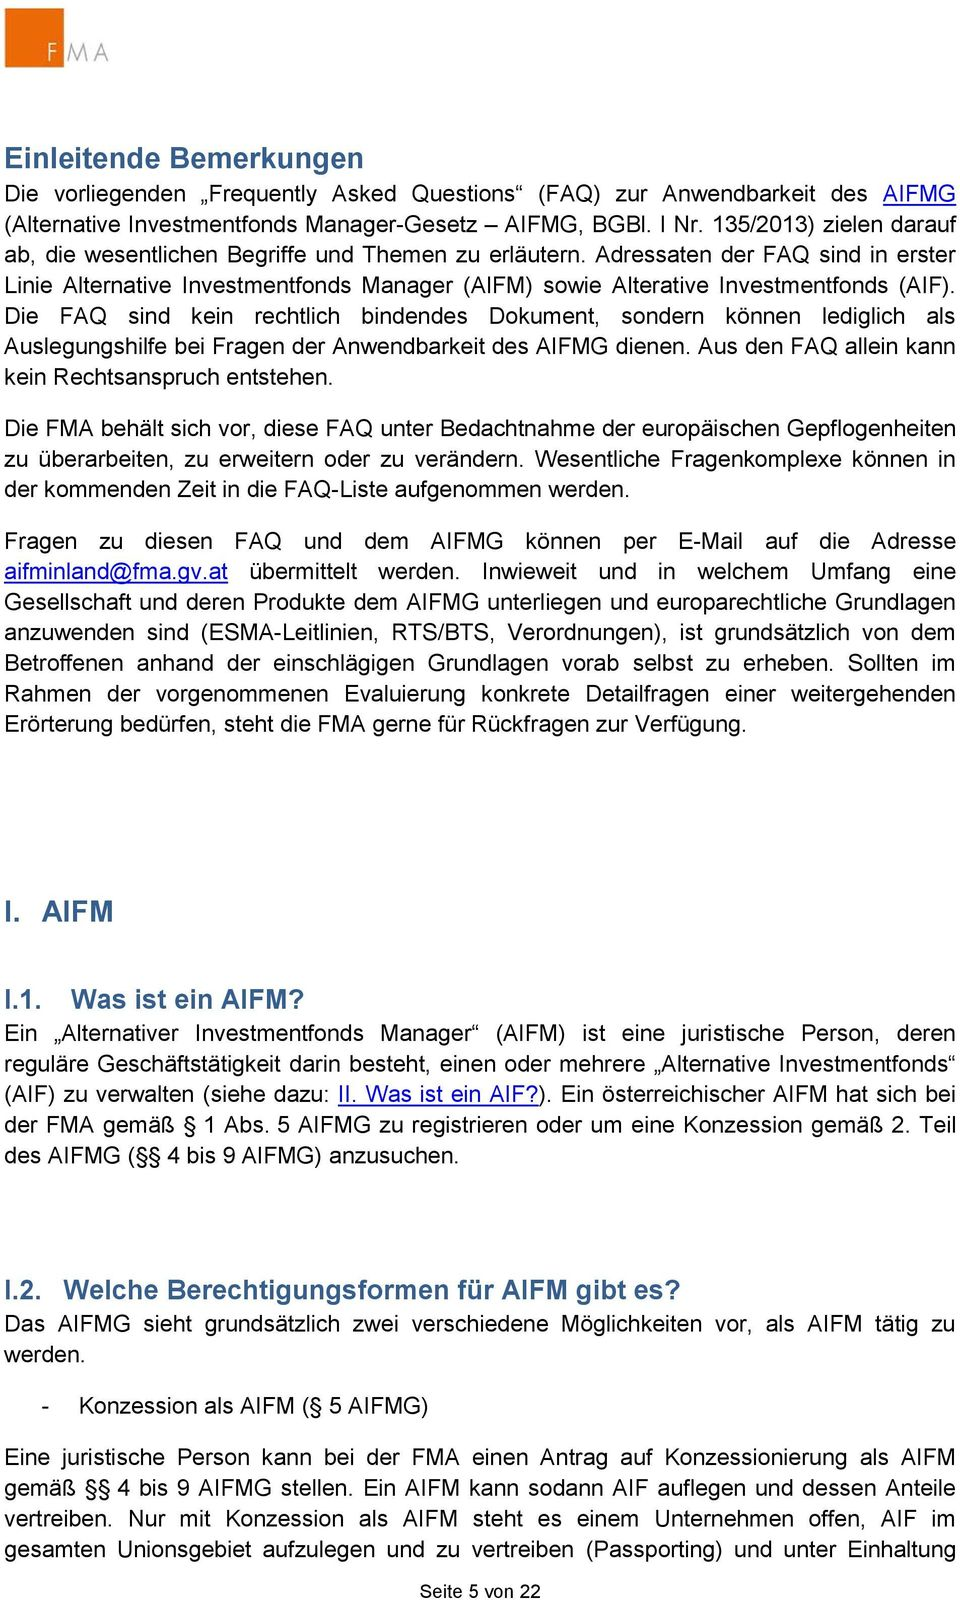 Adressaten der FAQ sind in erster Linie Alternative Investmentfonds Manager (AIFM) sowie Alterative Investmentfonds (AIF).